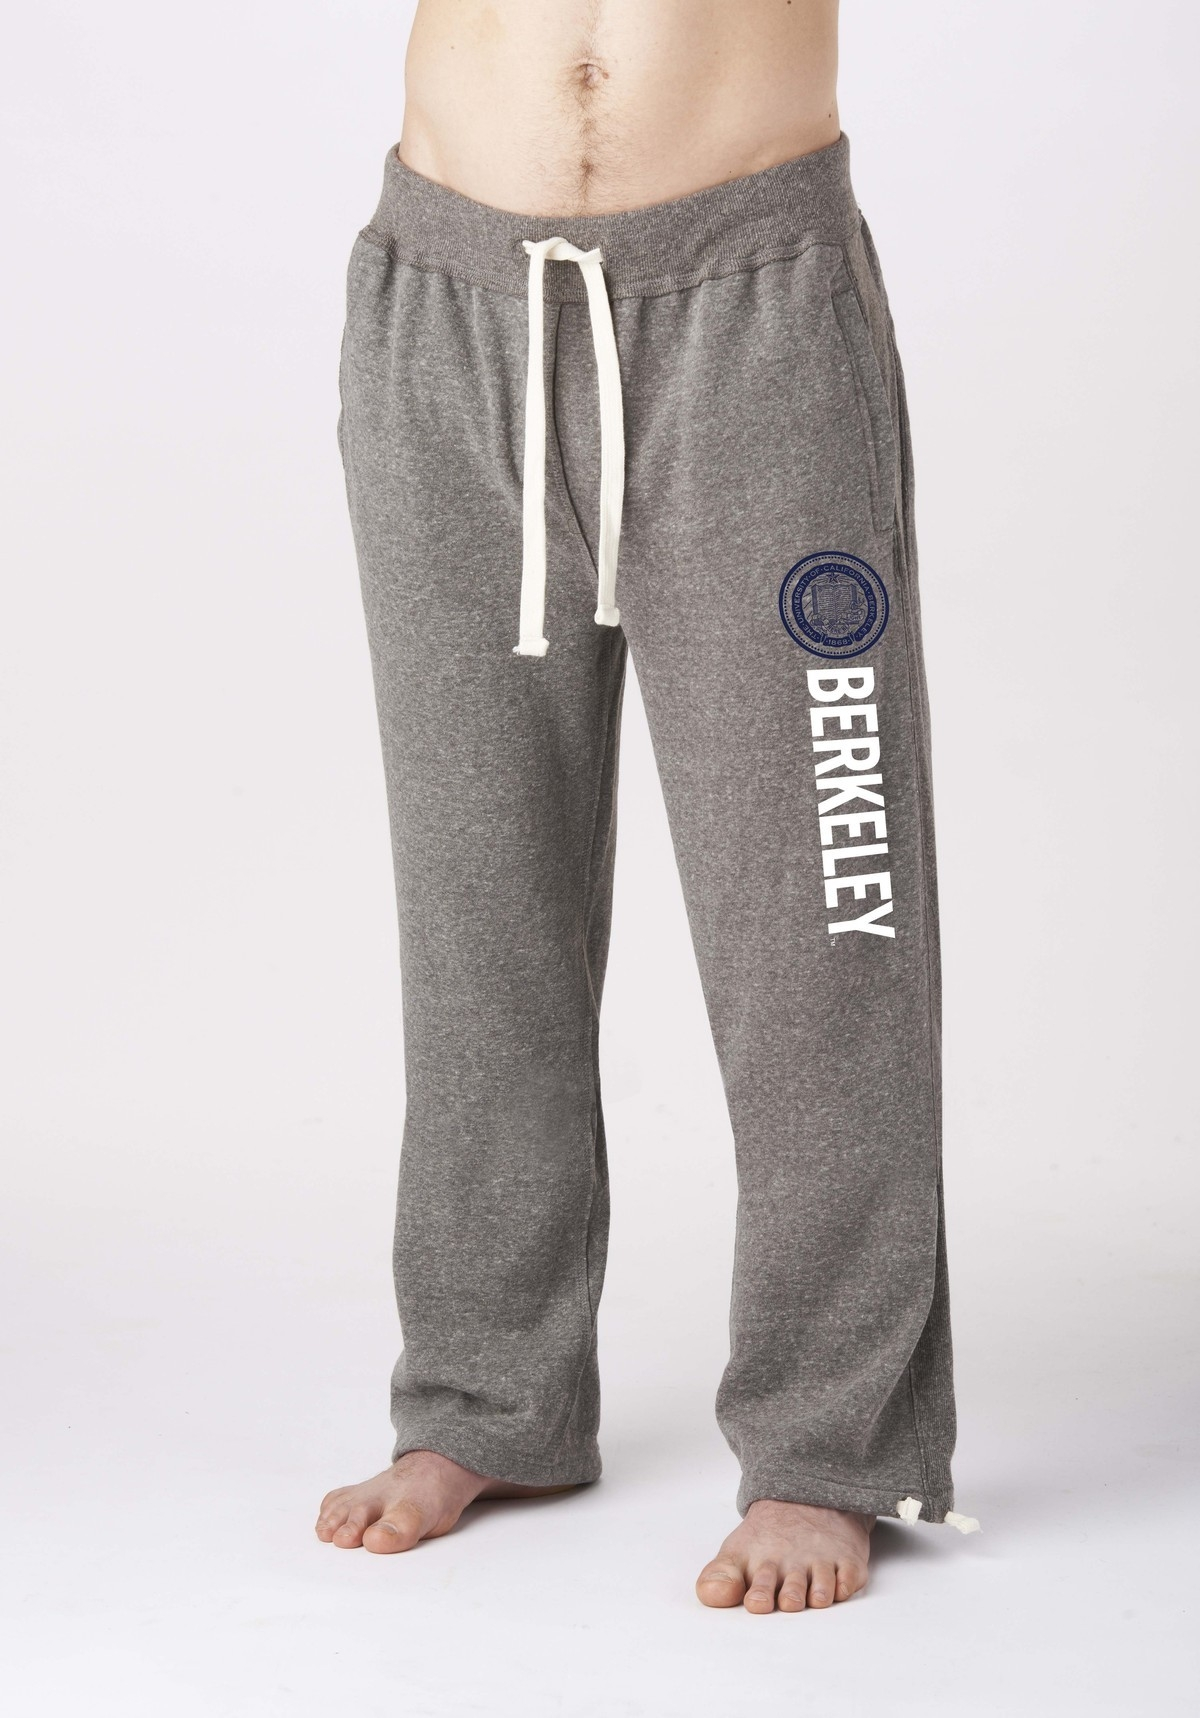 MD25-University of California Berkeley Fleece Pant by Campus Crew